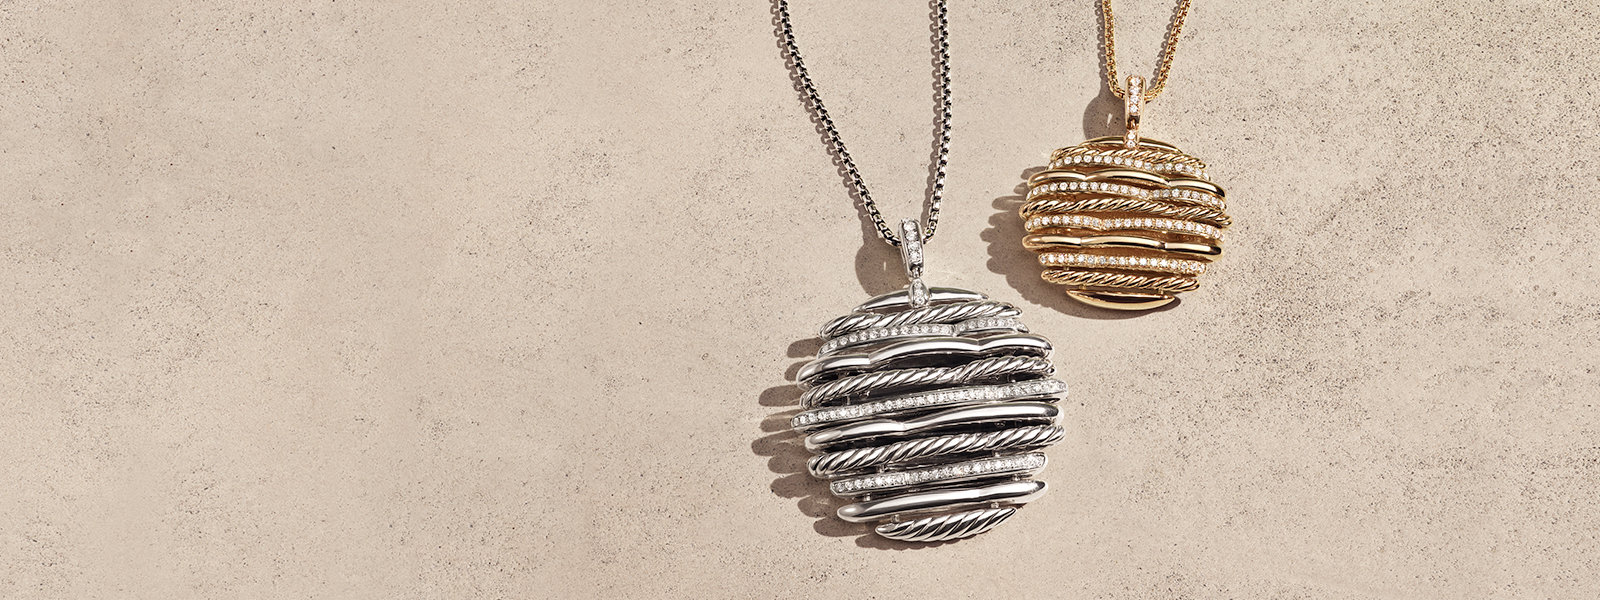 David Yurman Tides pendant necklaces in sterling silver or 18K yellow gold with white diamonds, next to one another and casting shadows on a light textured stone.